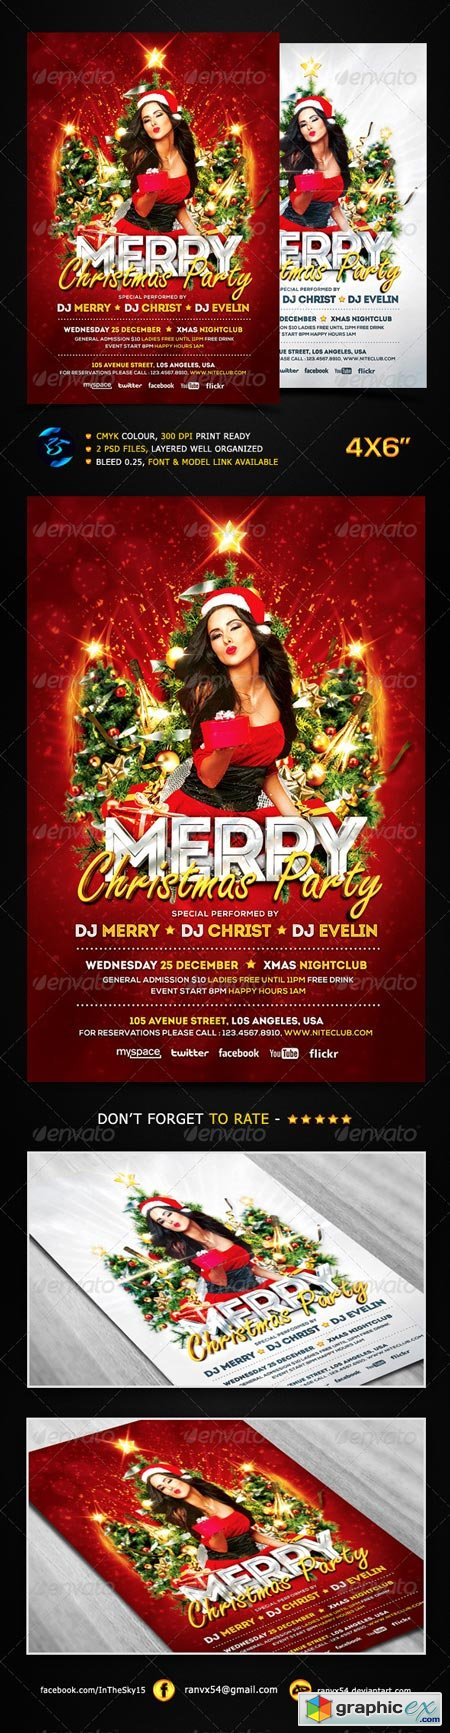 Merry Christmas Party Flyer Template 6352792